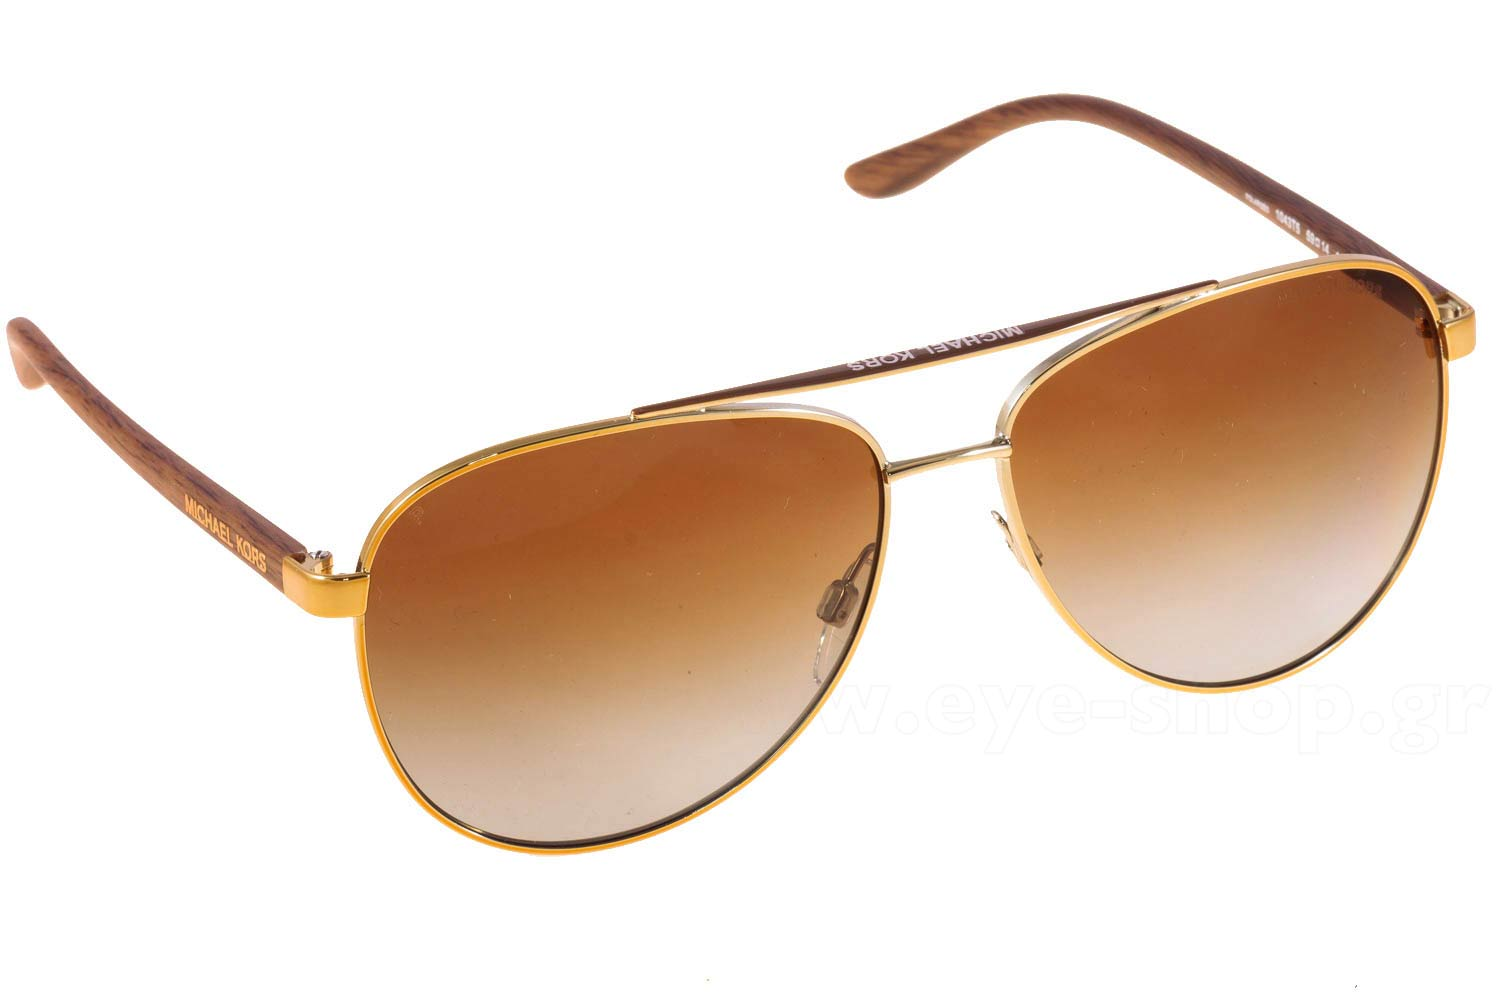 94bbc550225 SUNGLASSES Michael Kors 5007 HVAR 1043T5 polarized